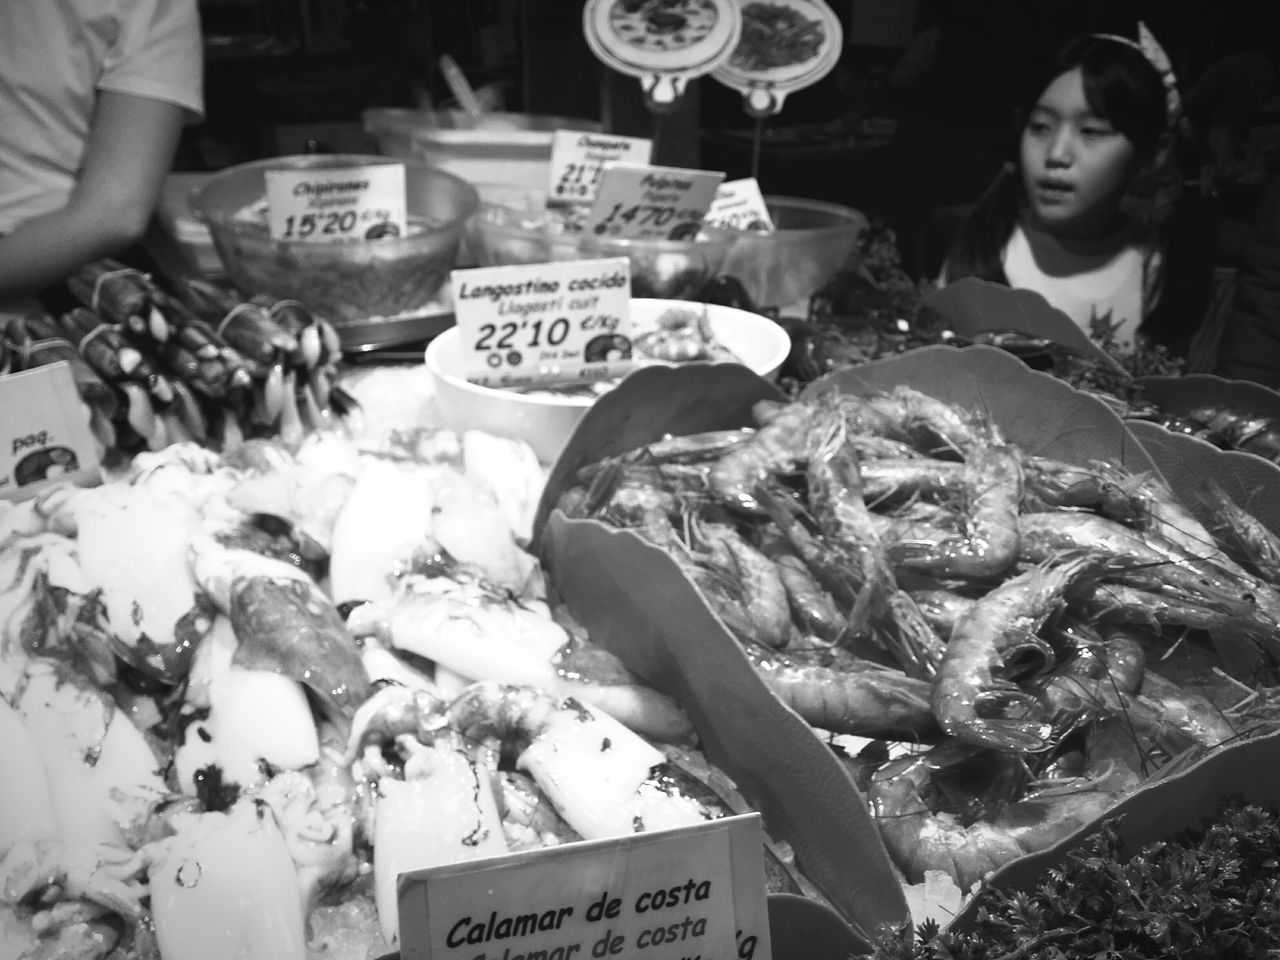 Del mar. Food Food And Drink Market Freshness Seafood Market Stall Business Finance And Industry Healthy Eating People Fish Market Night Gourmet Adult Eating Price Tag Food Staple Adults Only Outdoors Barcelona Indoors  Barcelona Streets Barcelona♡♥♡♥♡ Barcelona España Barcelonainspira Black And White